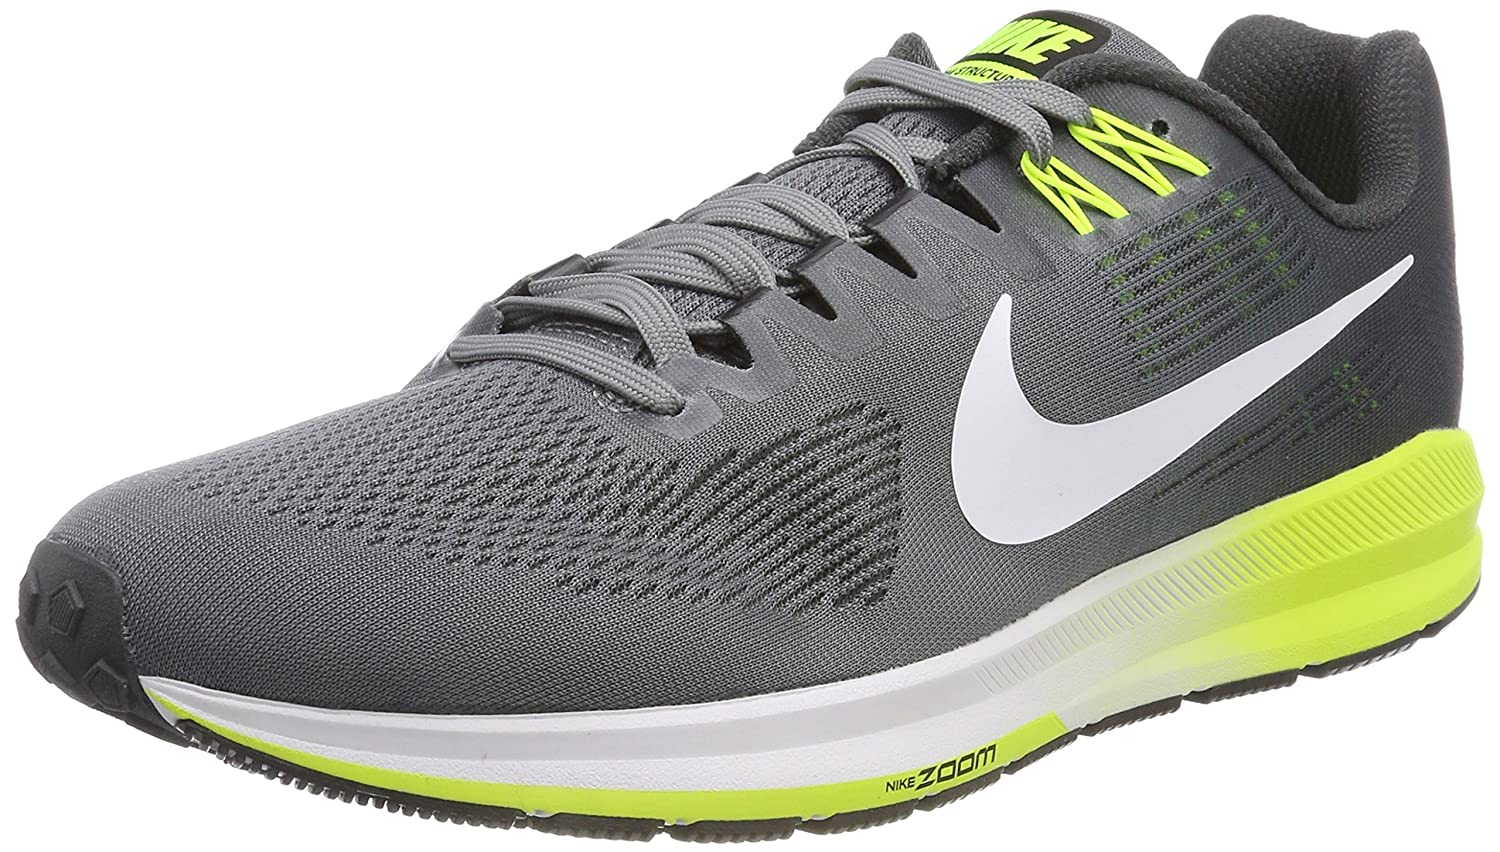 c2699cf1af1a NIKE Men s Air Zoom Structure 21 Running Shoe Wide (2E) Cool  Grey White-Anthracite-Volt